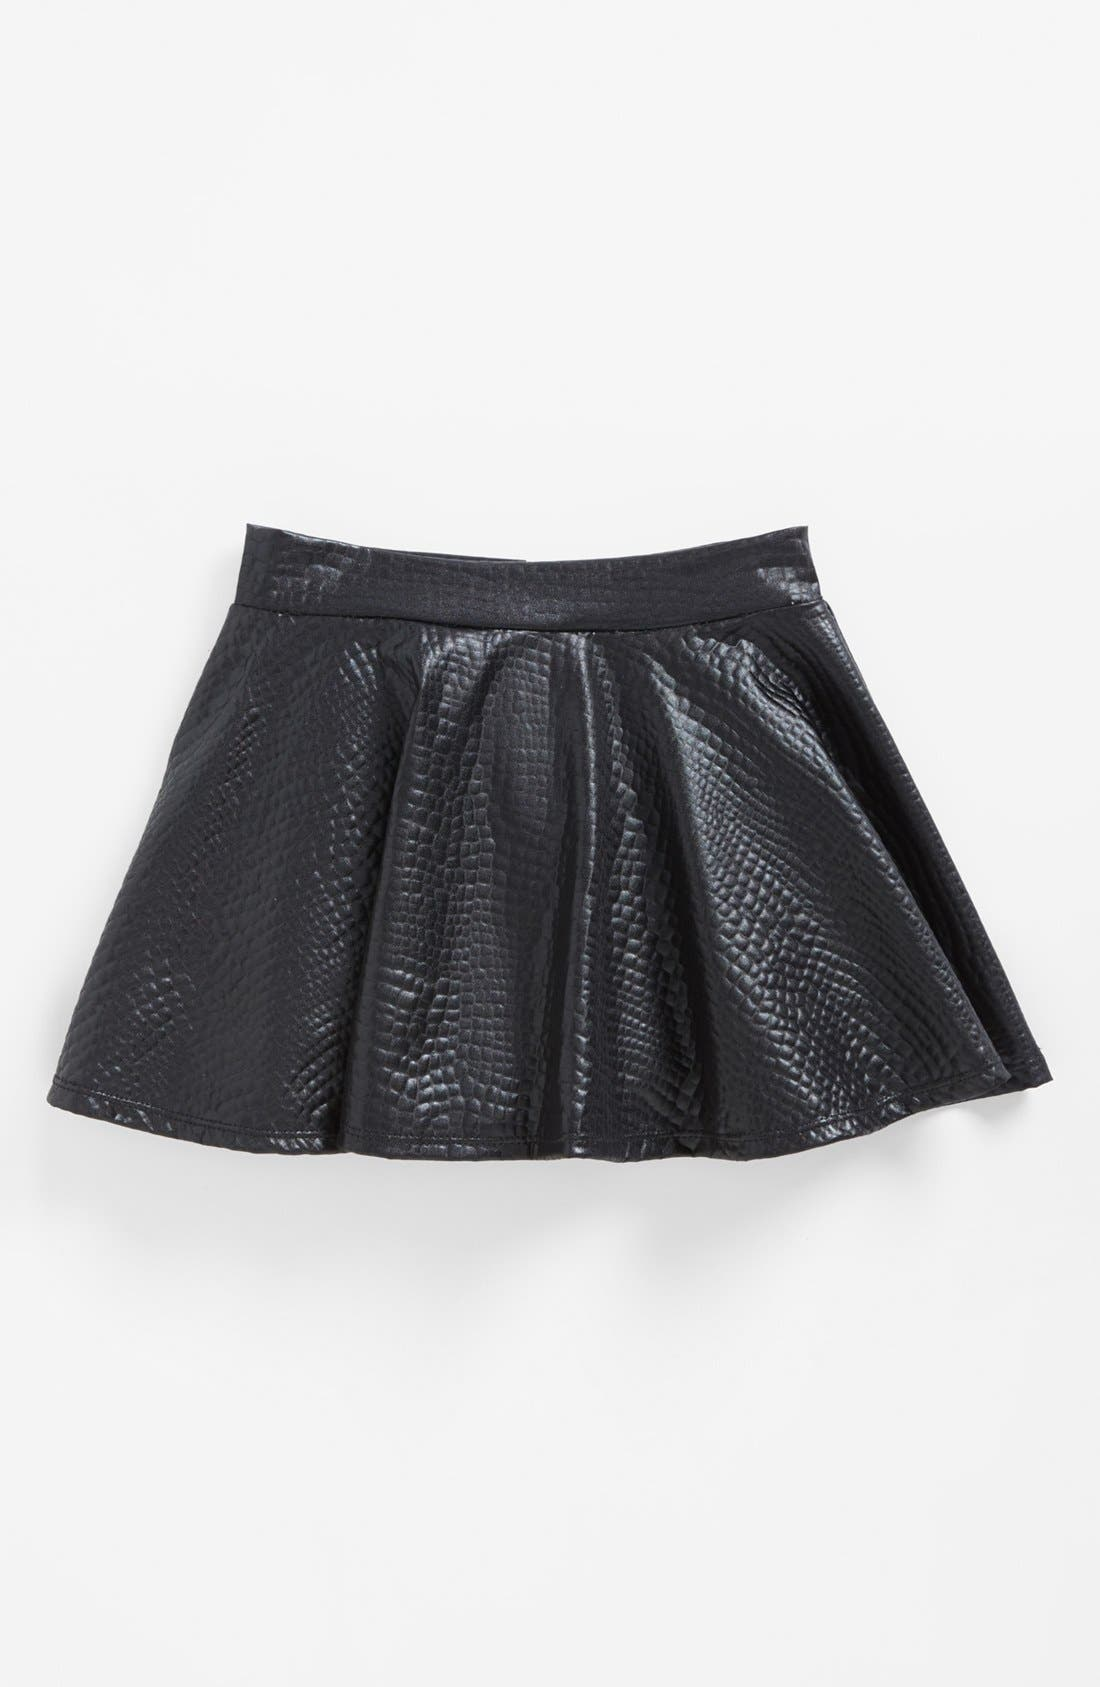 Alternate Image 1 Selected - Flowers by Zoe Faux Leather Skirt (Big Girls) (Online Only)